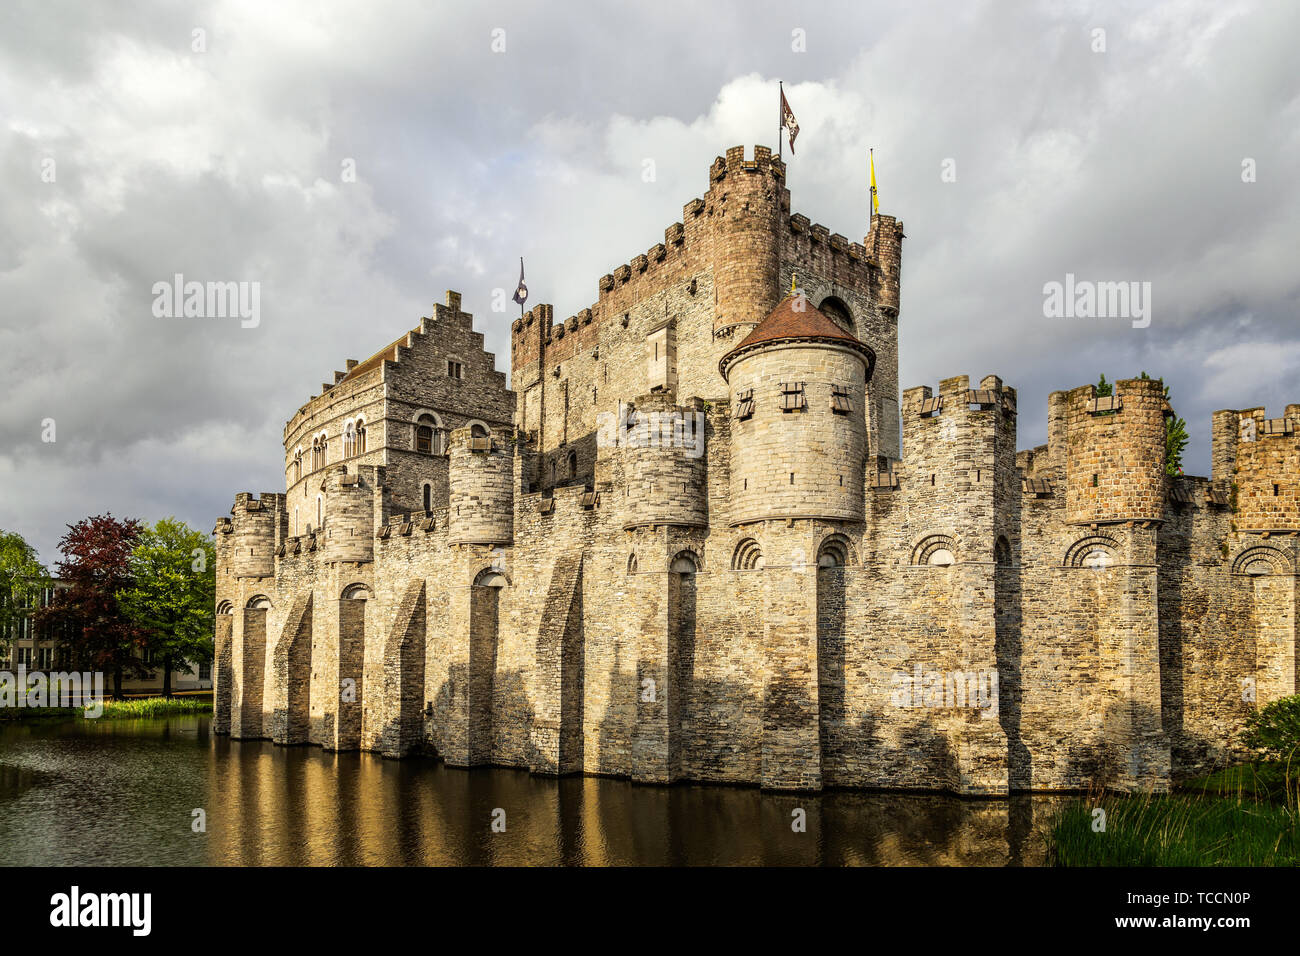 Fortified walls and towers of Gravensteen medieval castle with moat in the foreground, Ghent East Flanders, Belgium Stock Photo